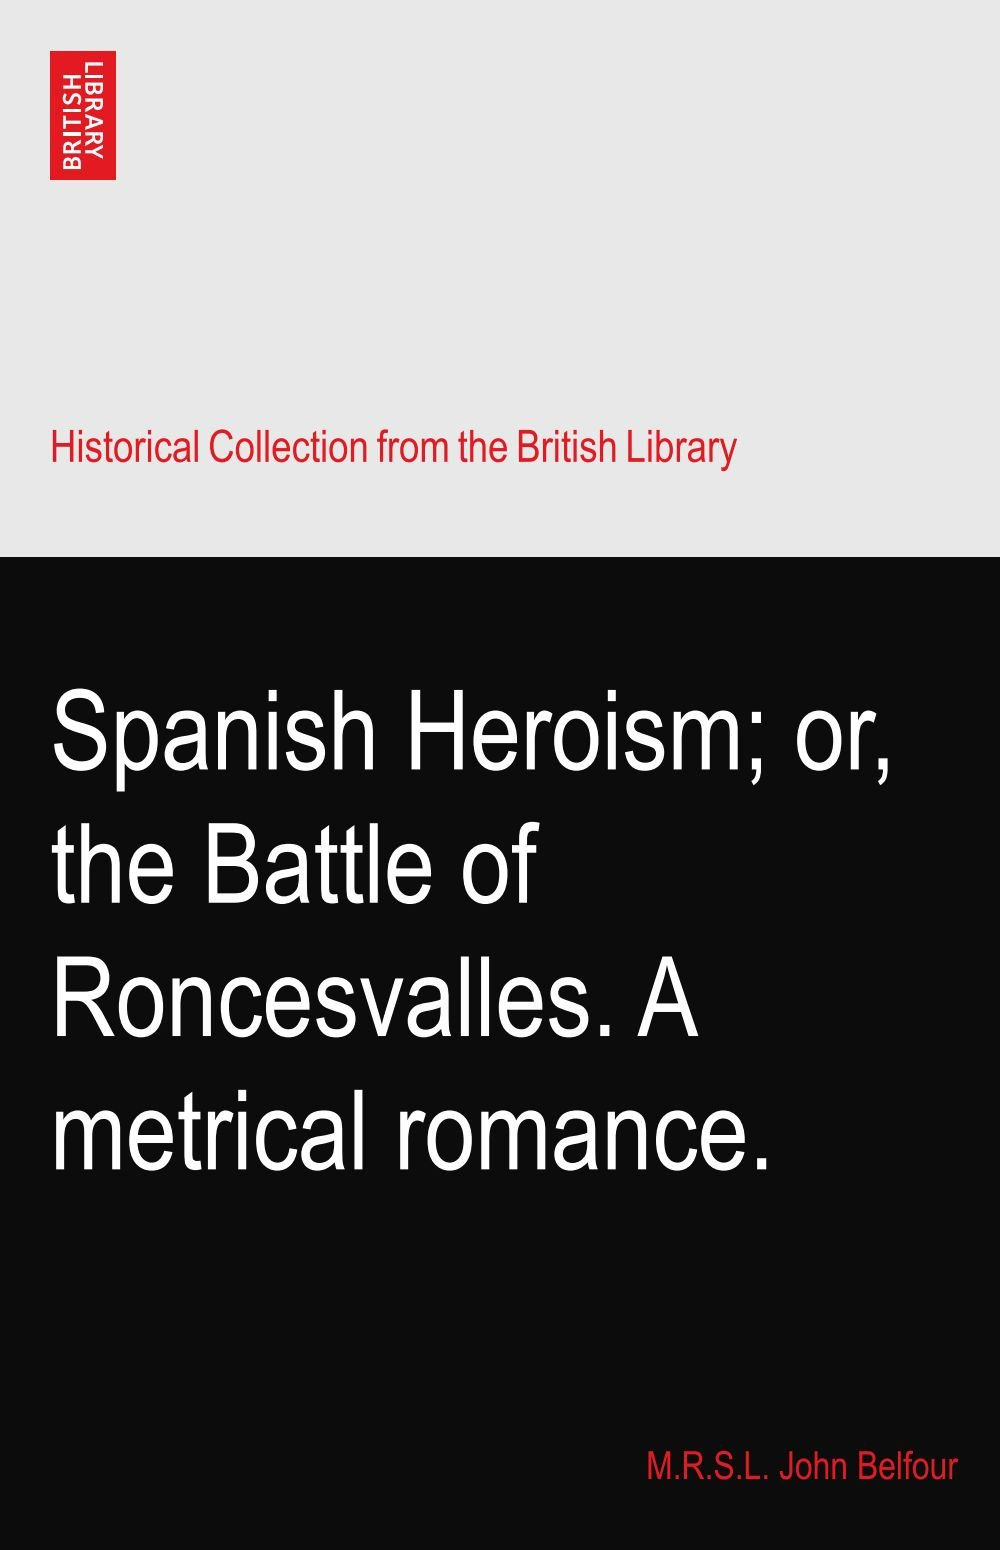 Download Spanish Heroism; or, the Battle of Roncesvalles. A metrical romance. PDF